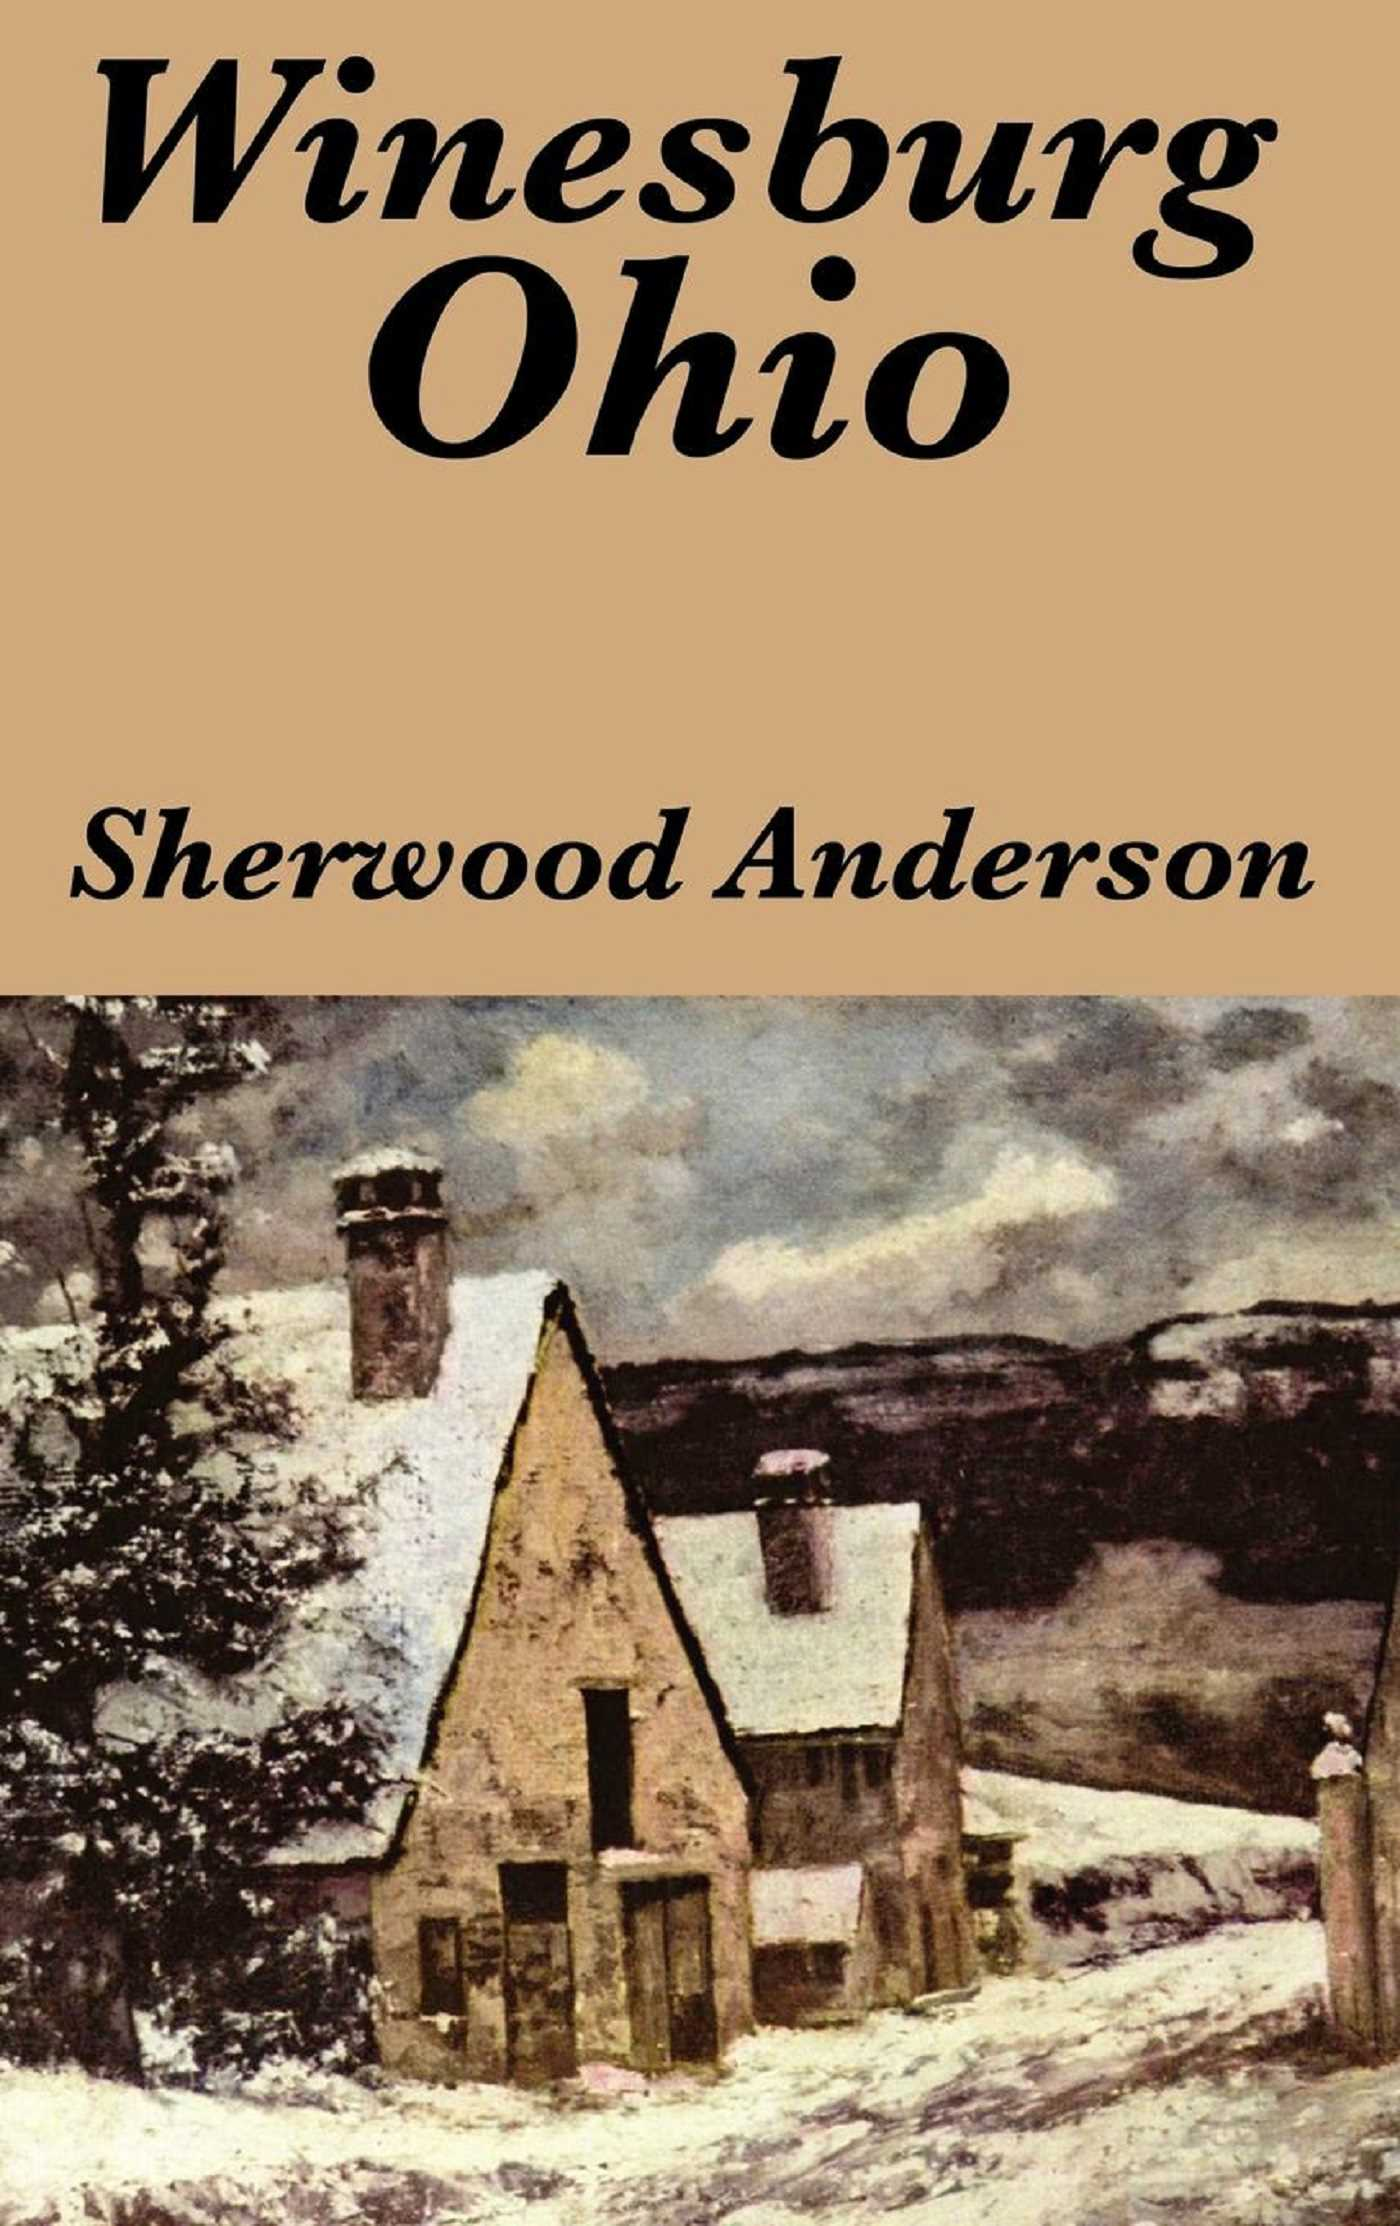 an examination of the story of sophistication sherwood anderson